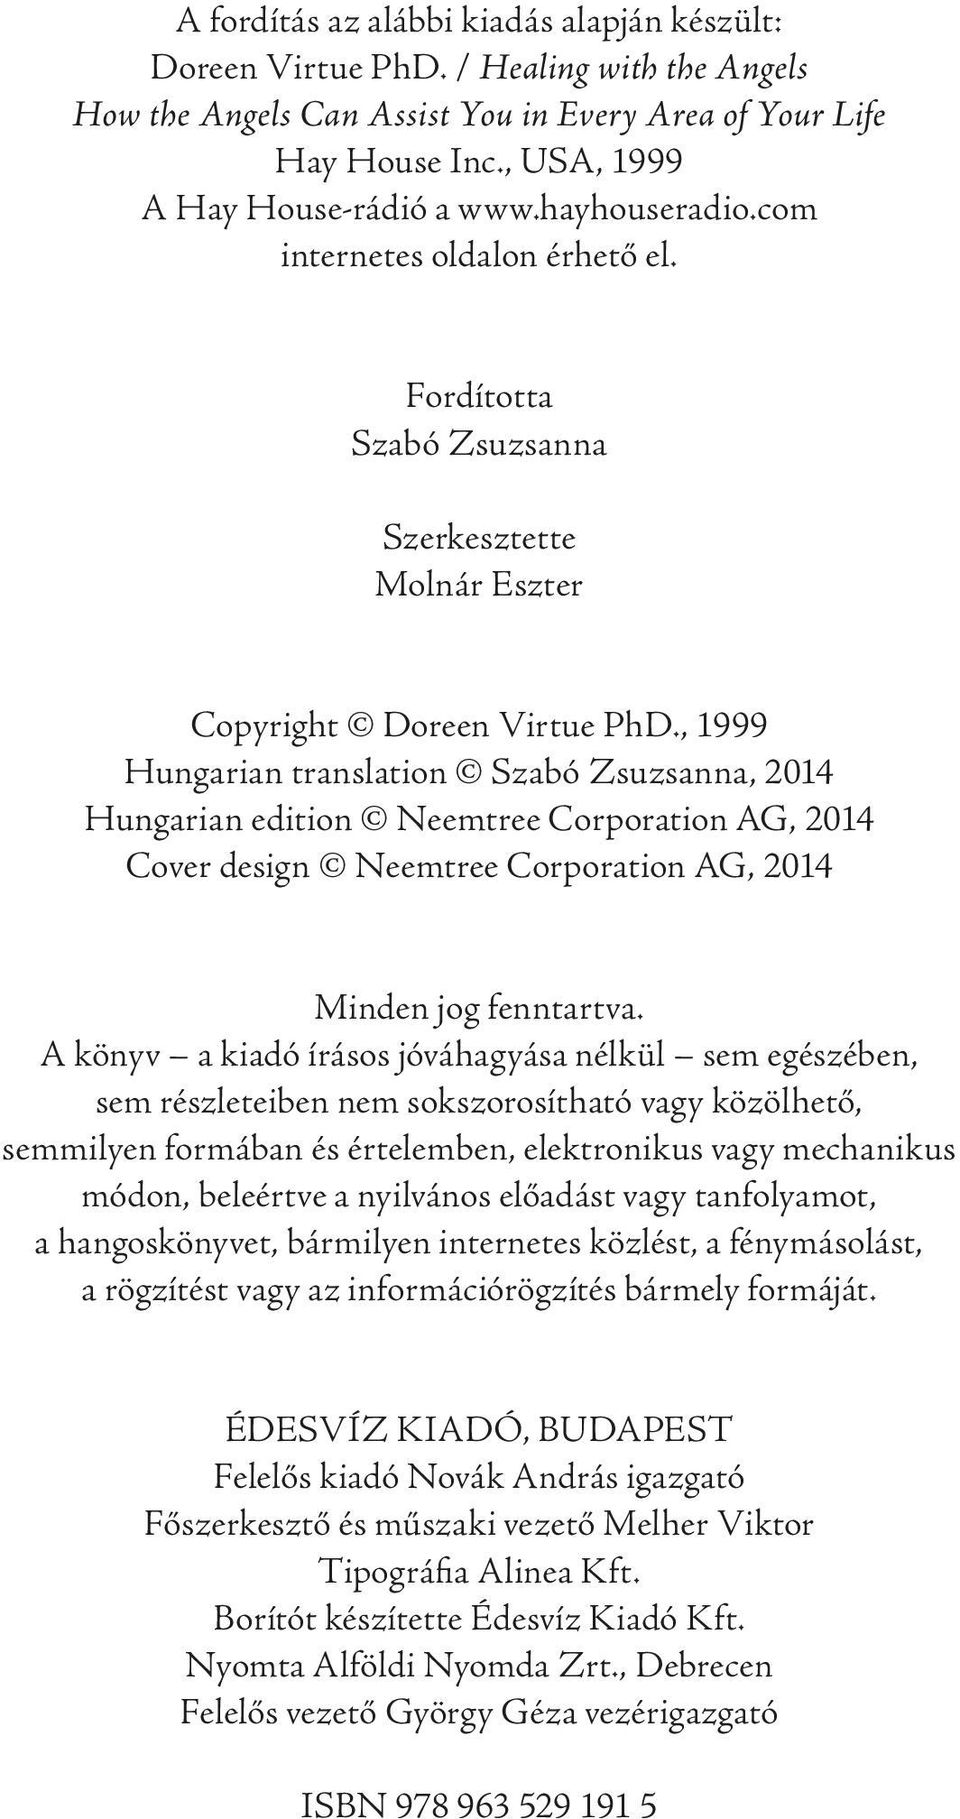 , 1999 Hungarian translation Szabó Zsuzsanna, 2014 Hungarian edition Neemtree Corporation AG, 2014 Cover design Neemtree Corporation AG, 2014 Minden jog fenntartva.